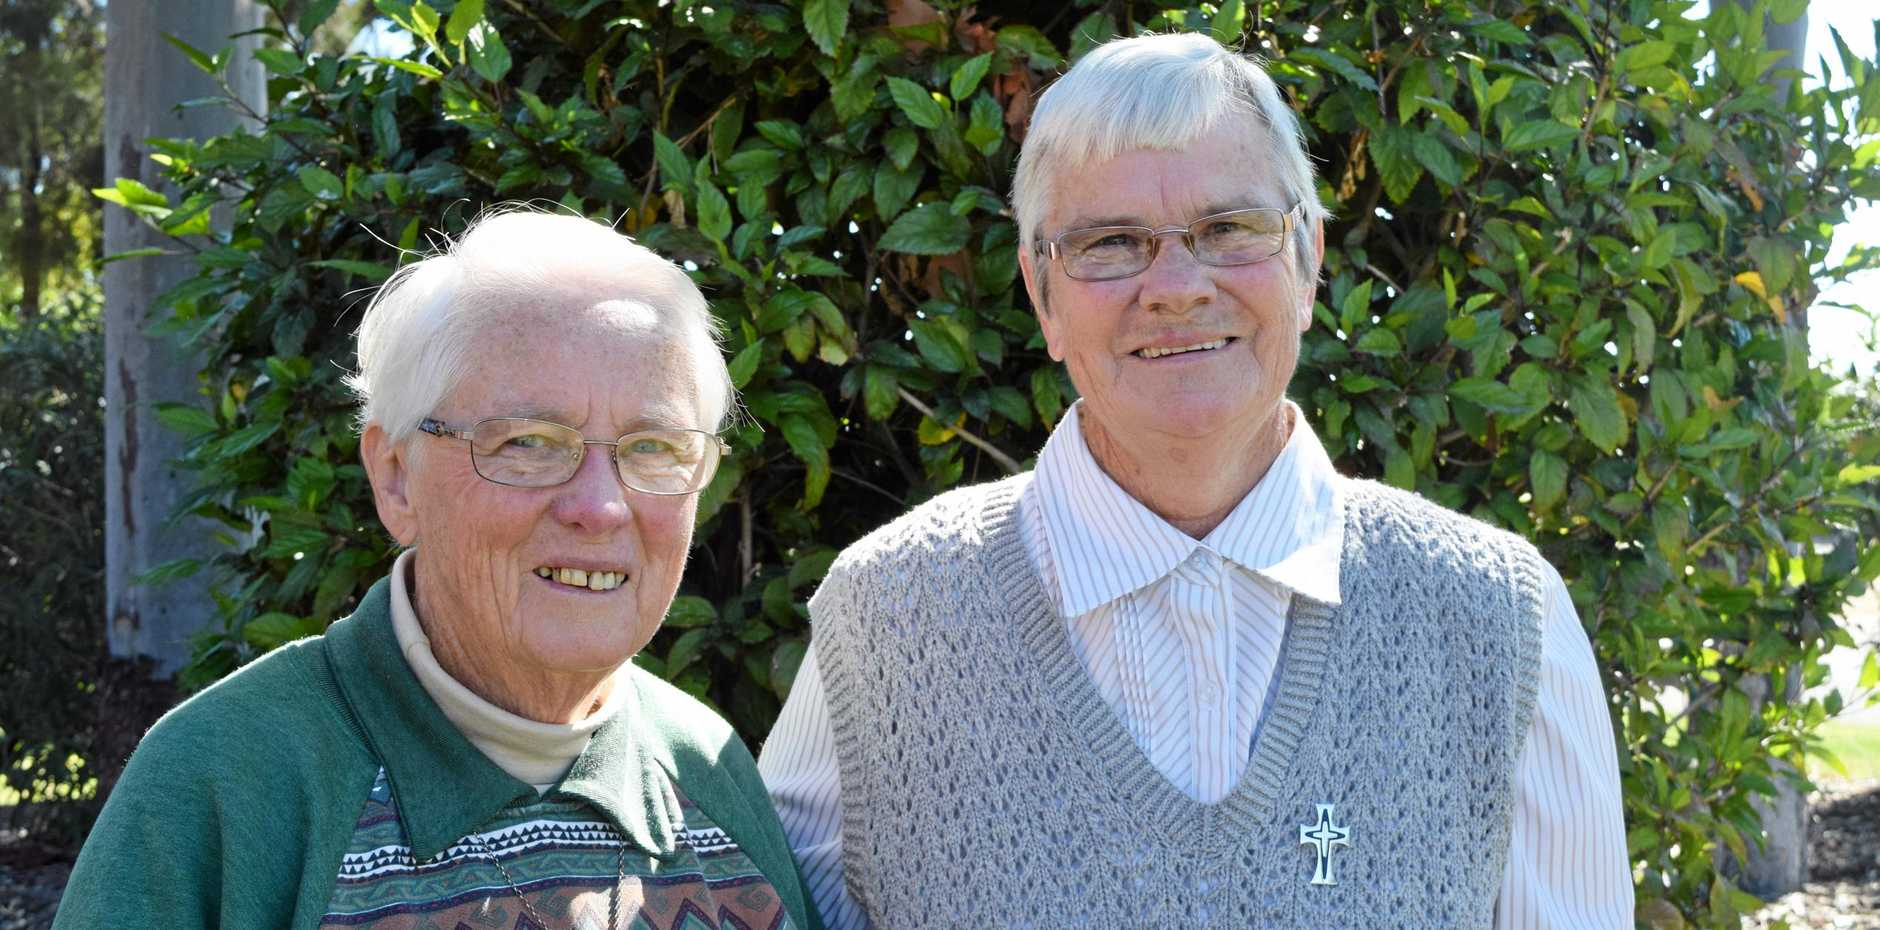 WASTE WARRIORS: Sr Carmel Boyle and Sr Colleen Livermore from Mary Immaculate Parish, Blackwater, are determined to do their bit to help those less fortunate.